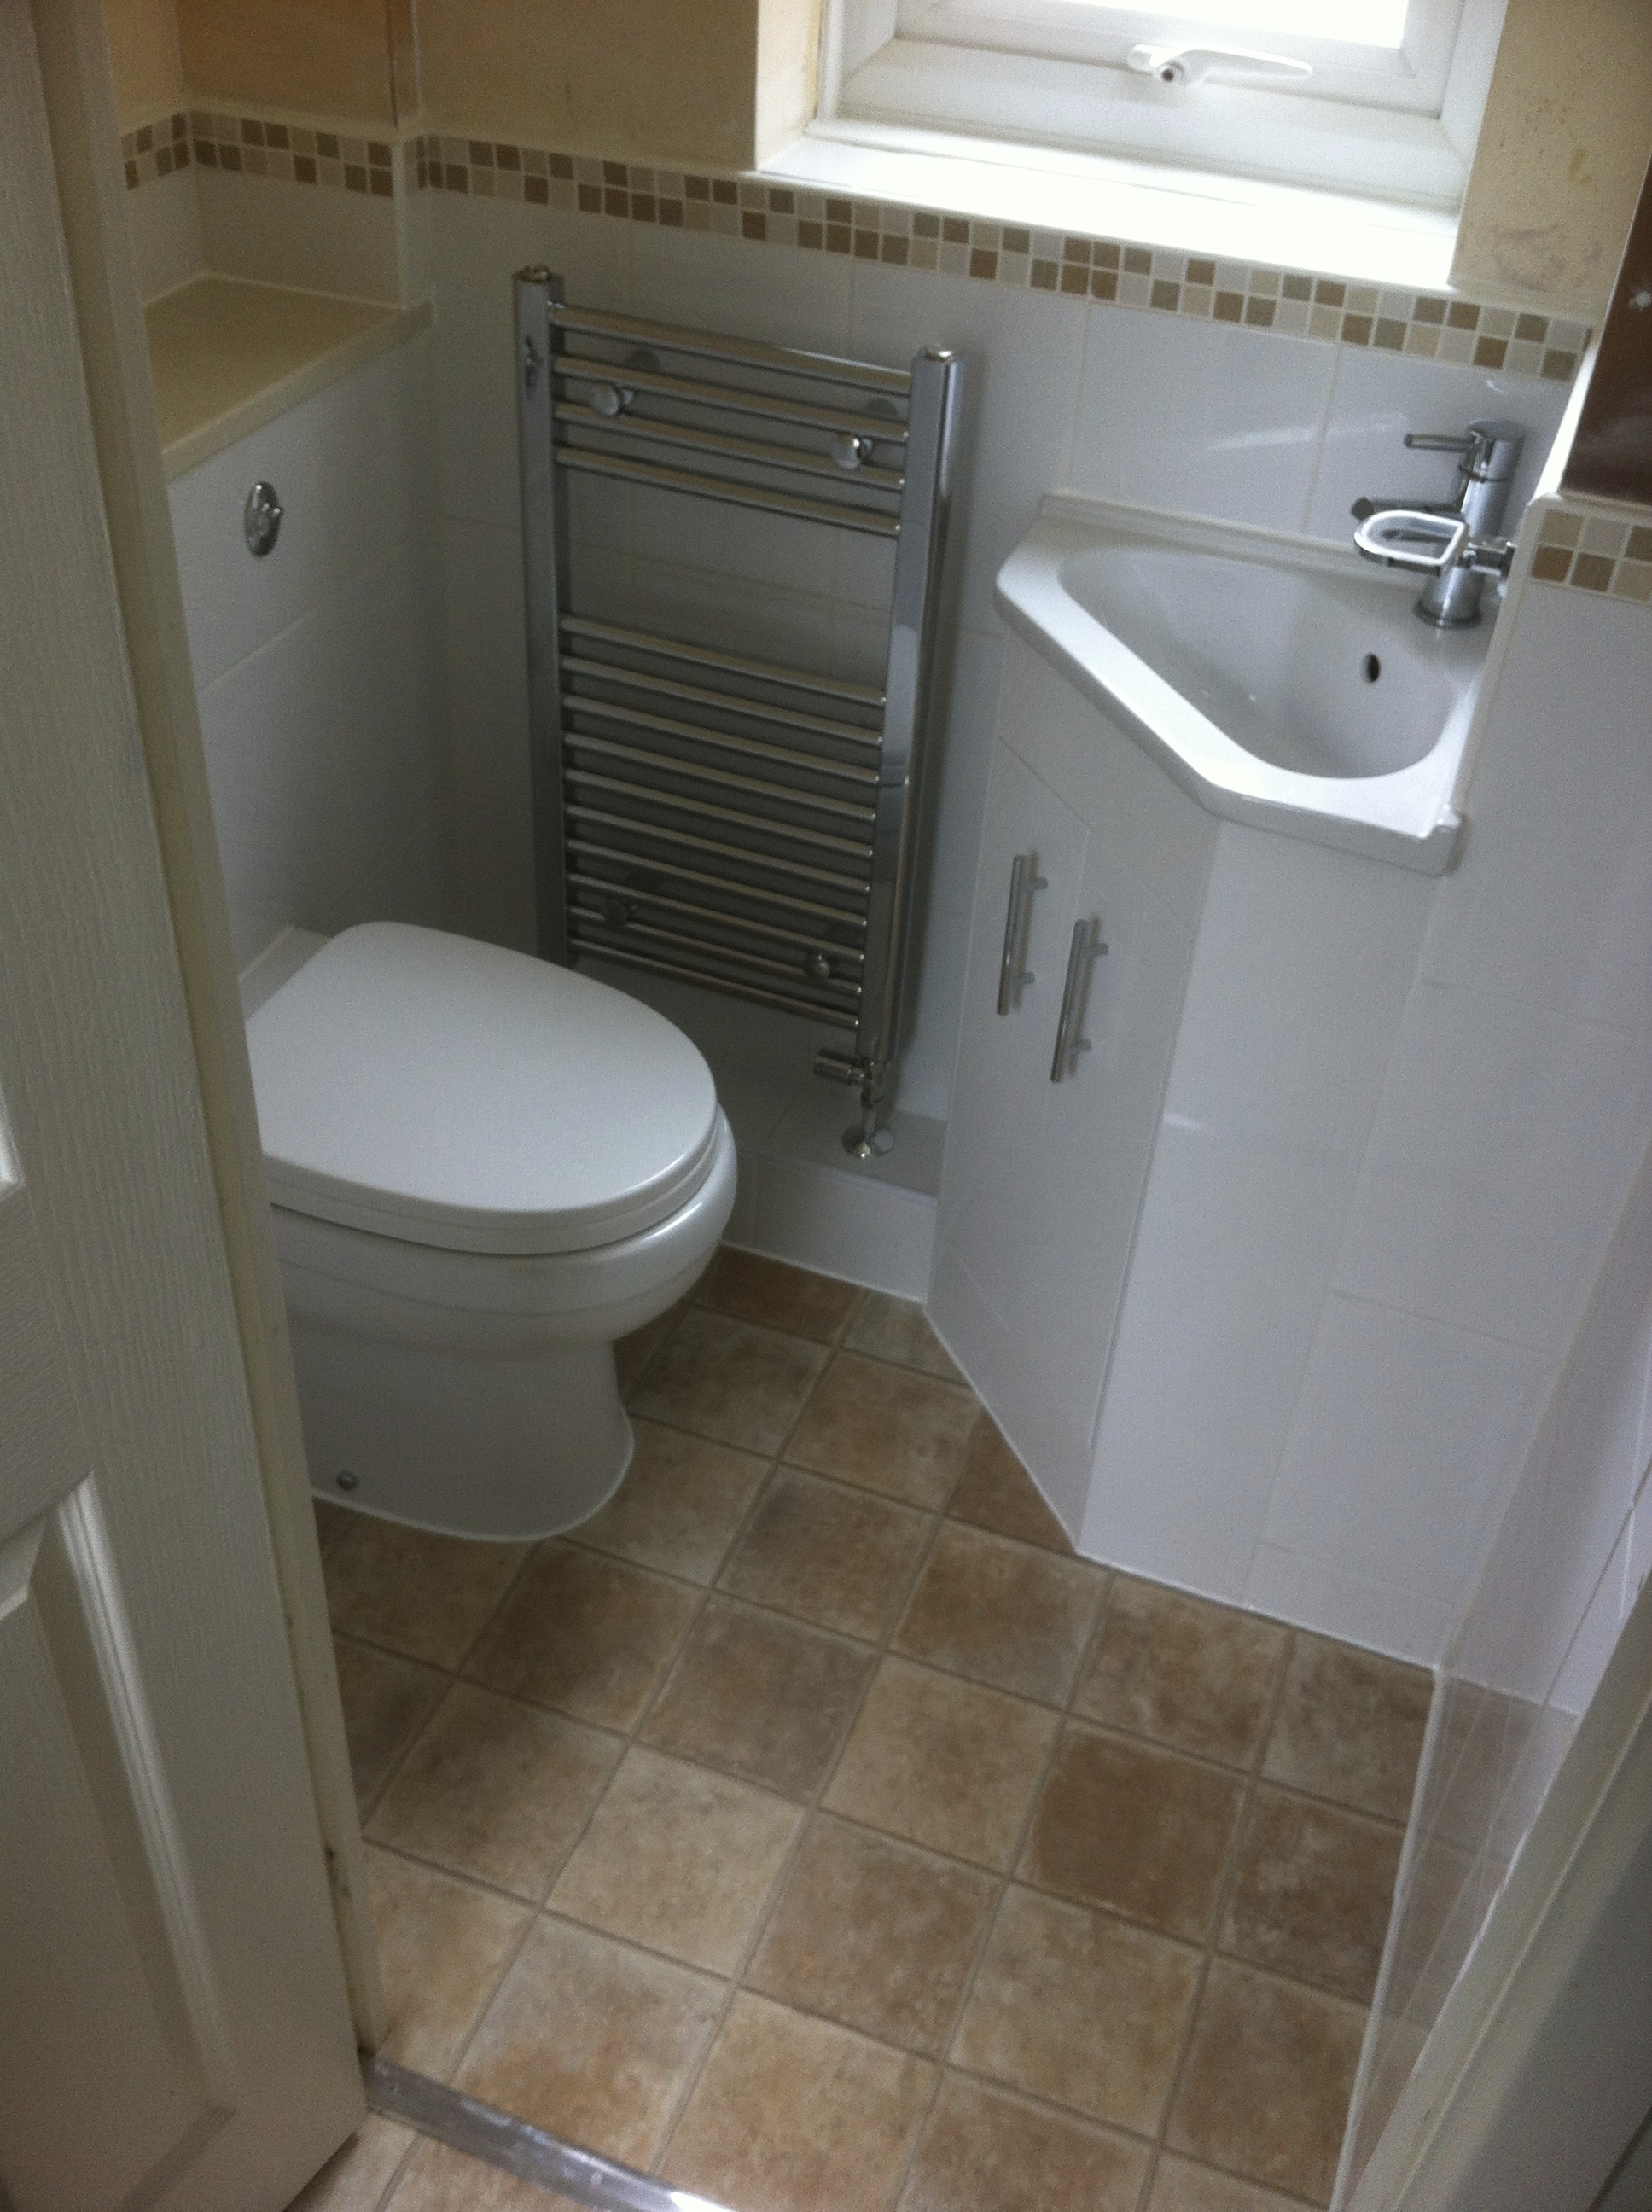 Make use of a small Cloakroom.